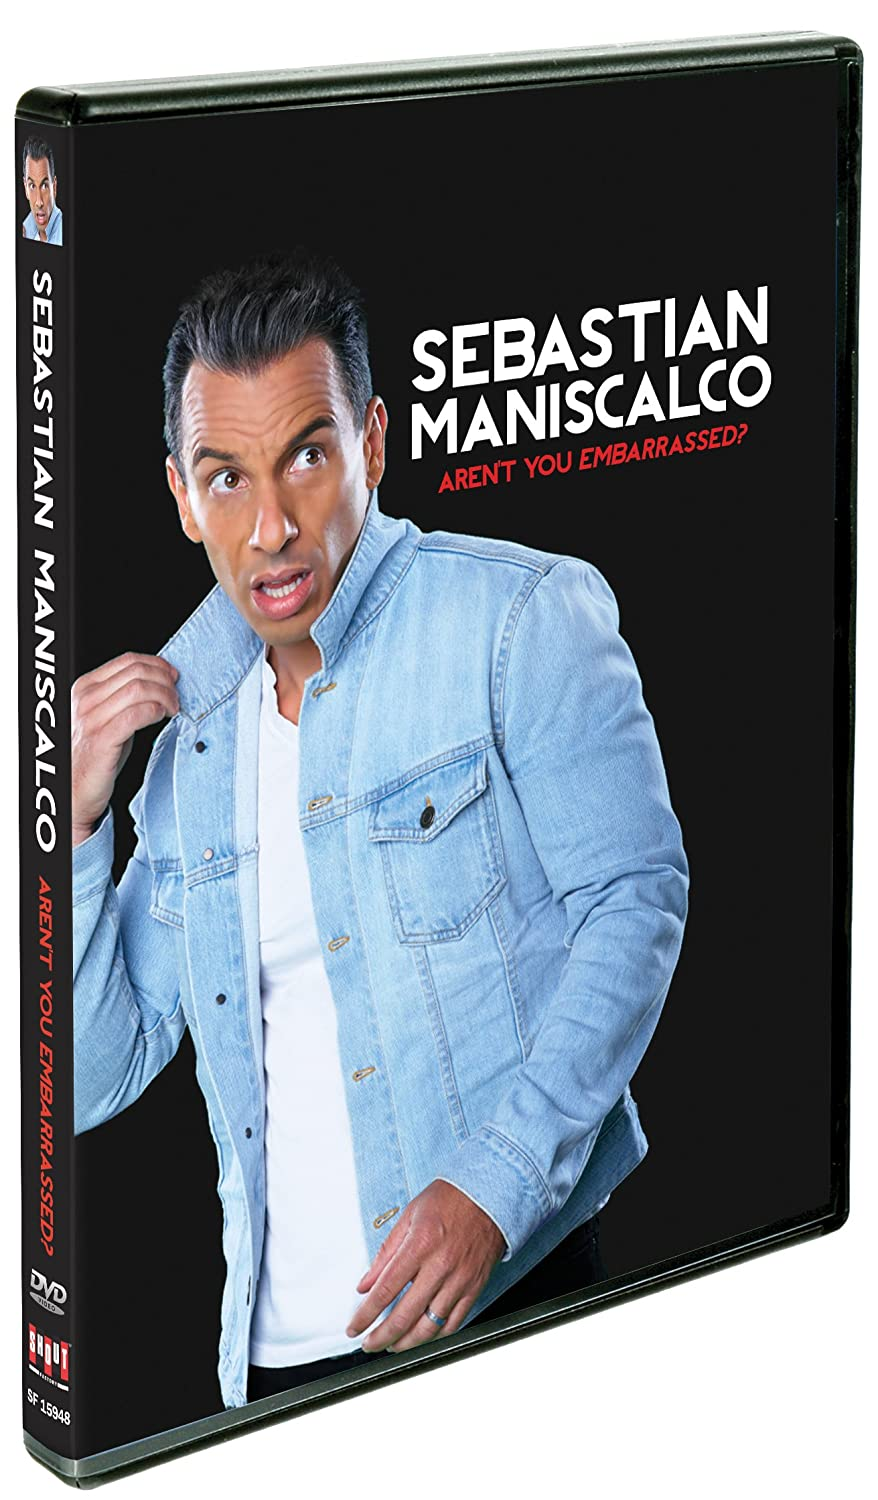 sebastian maniscalco torrent